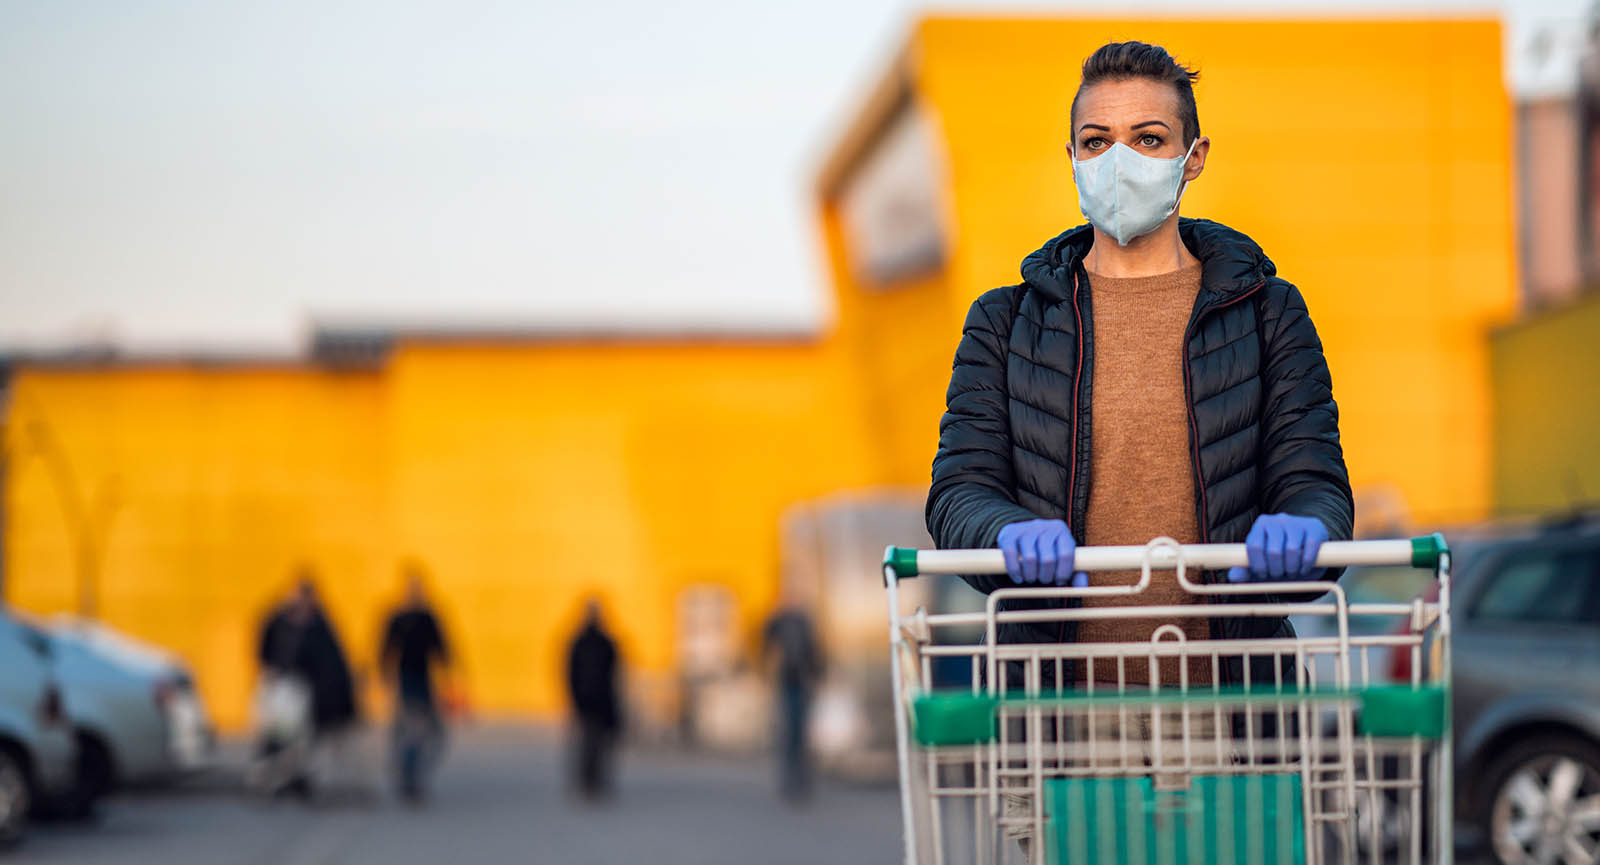 Shopping Tips in a Pandemic